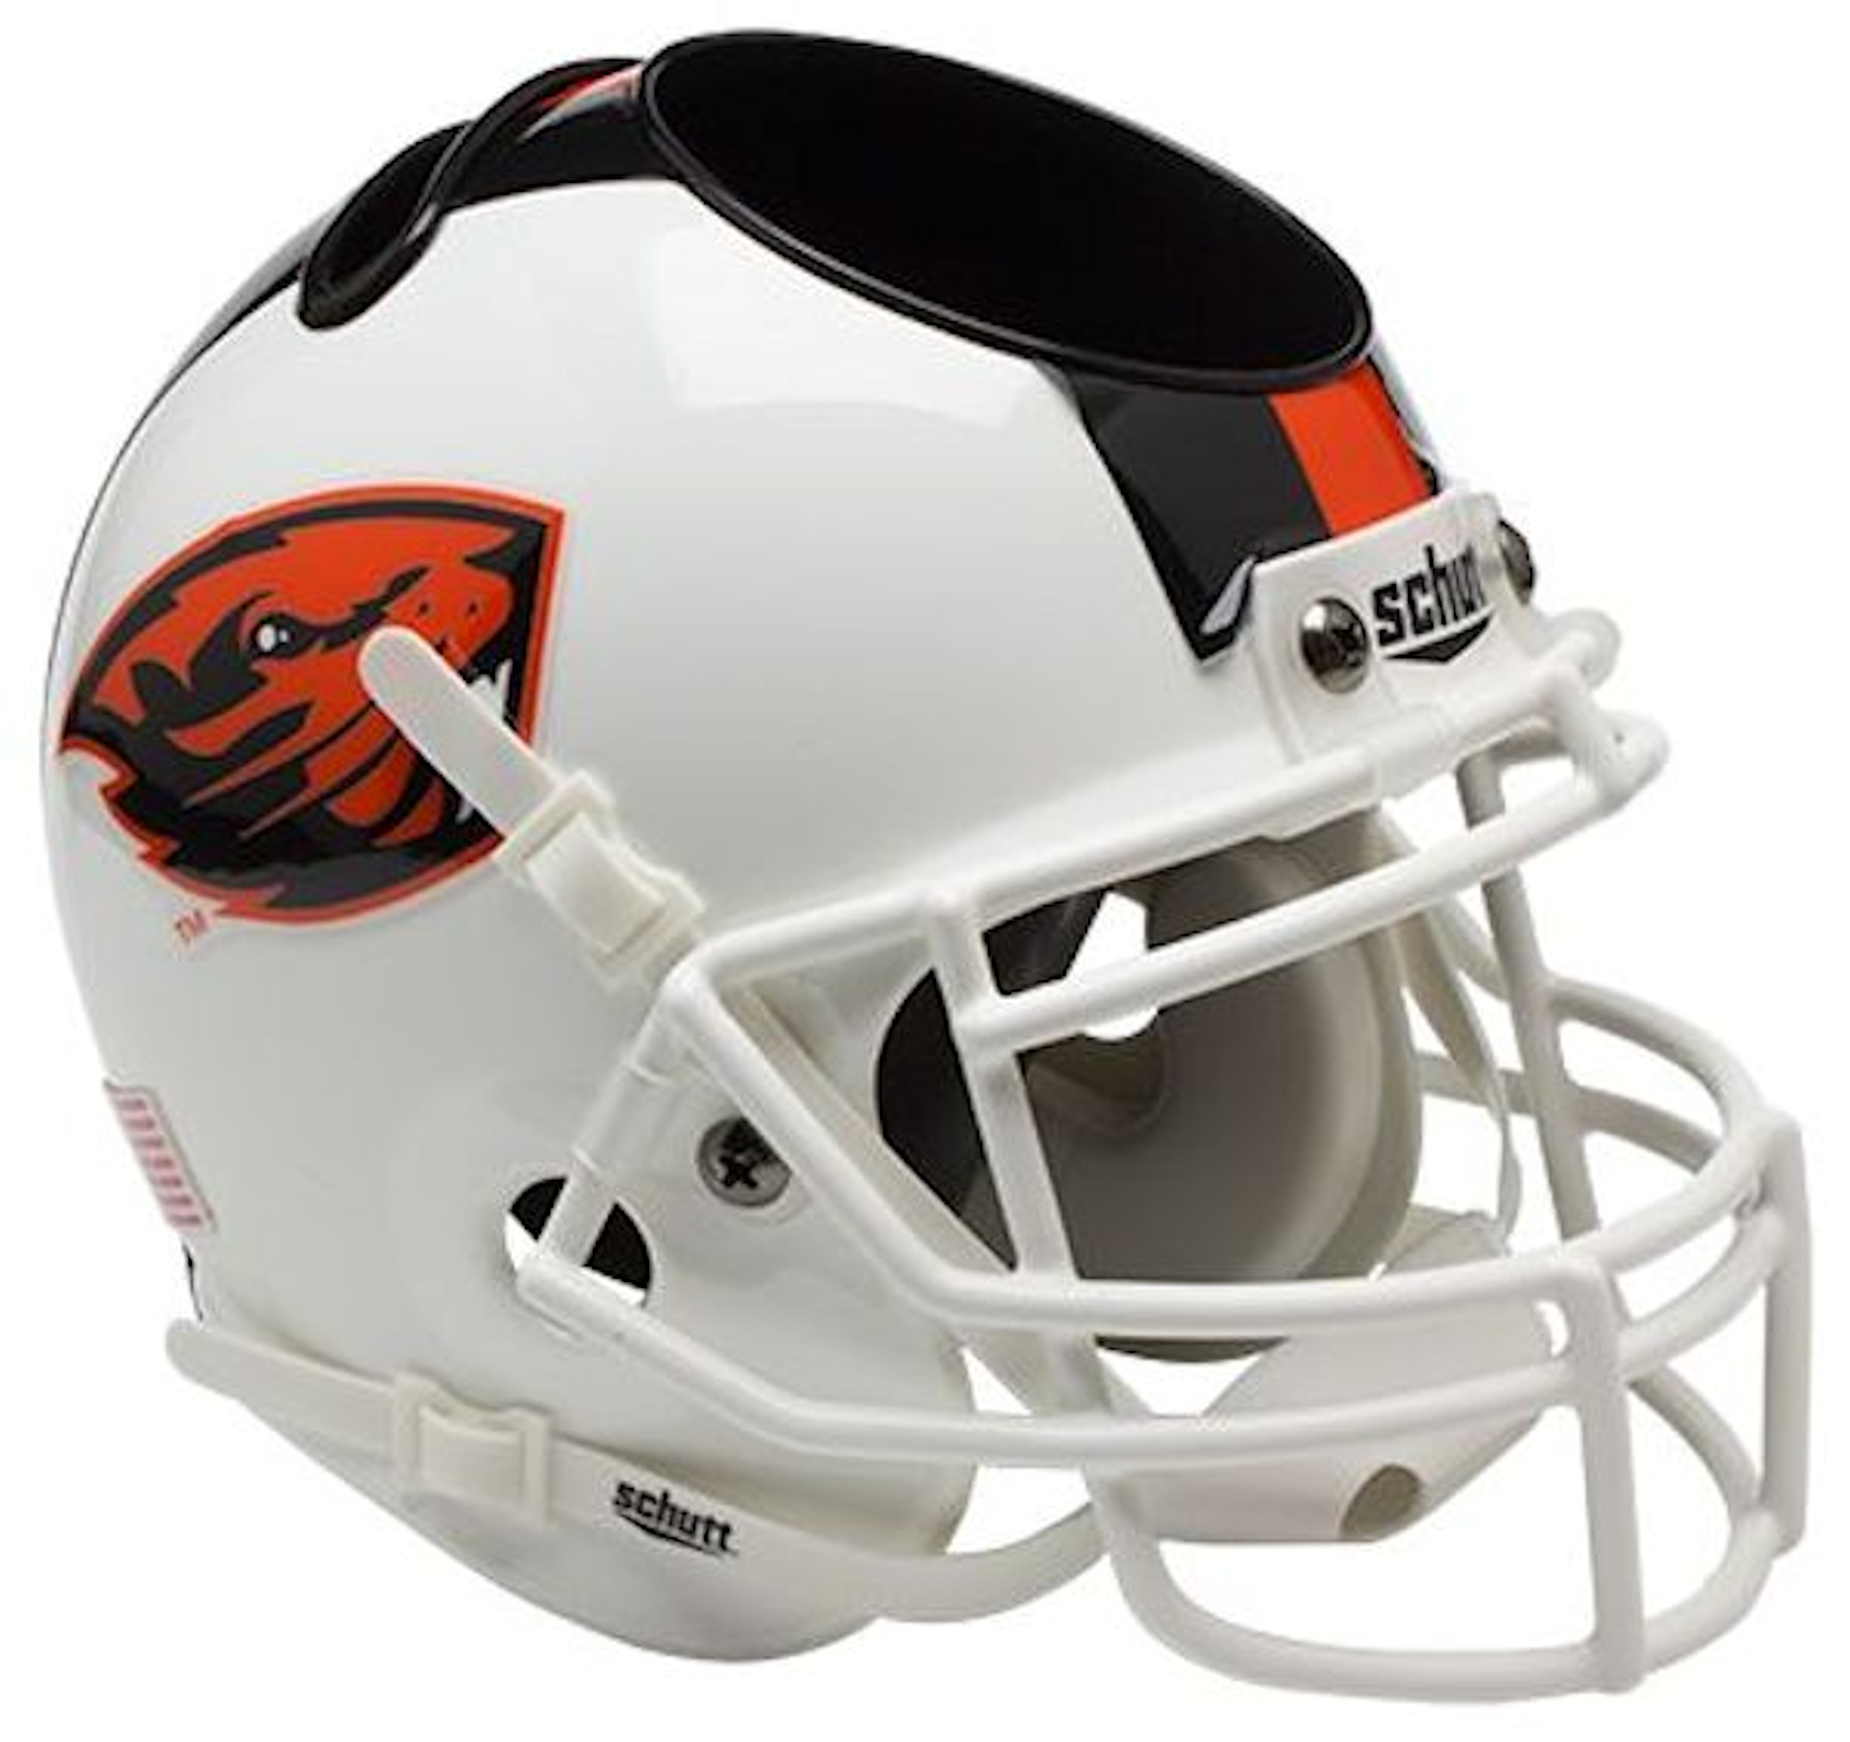 Oregon State Beavers Miniature Football Helmet Desk Caddy <B>White</B>